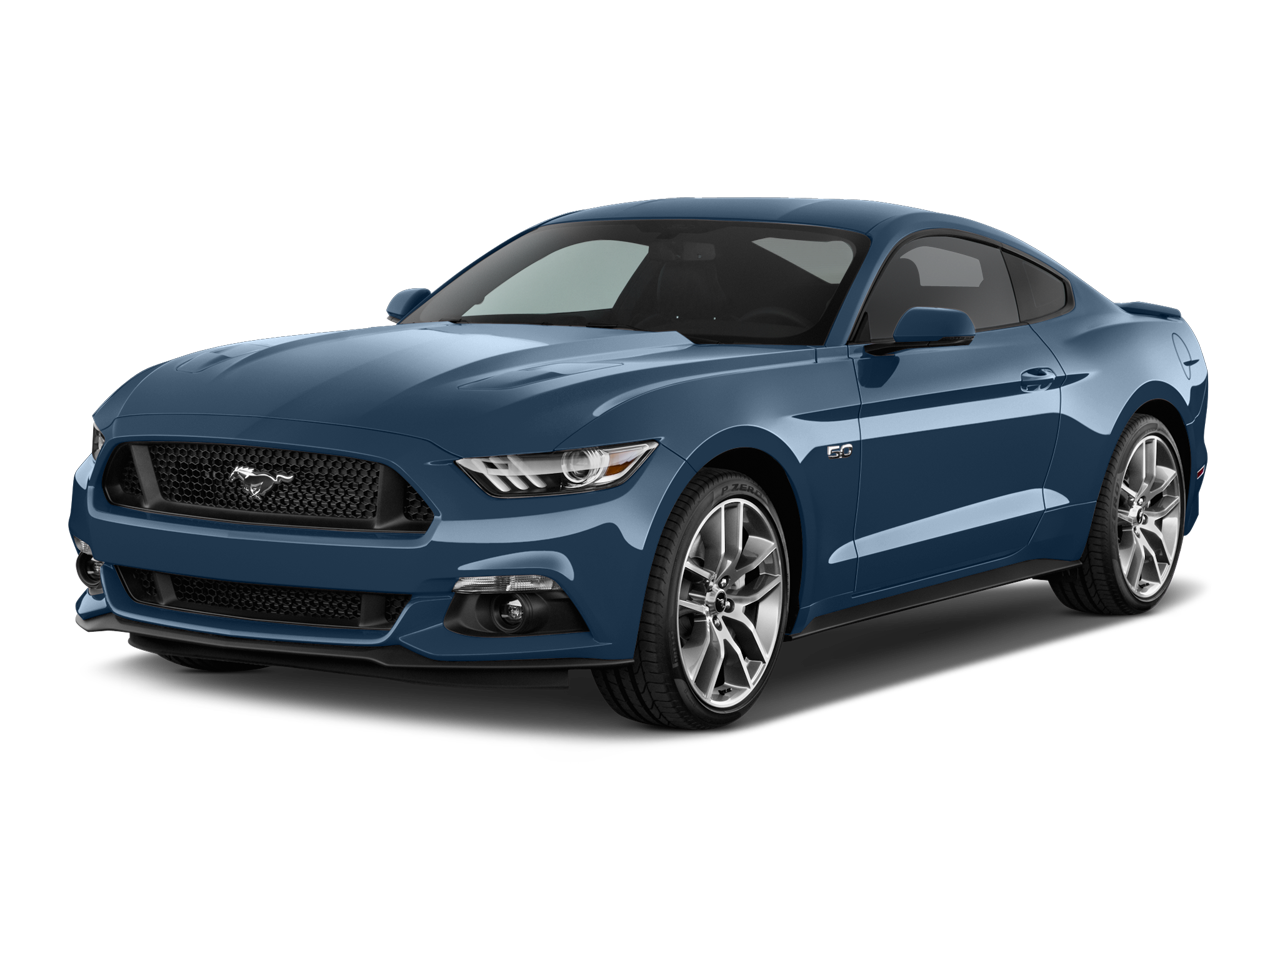 Capital Ford Carson City >> New 2017 Ford Mustang GT Premium - Carson City NV - Capital Ford